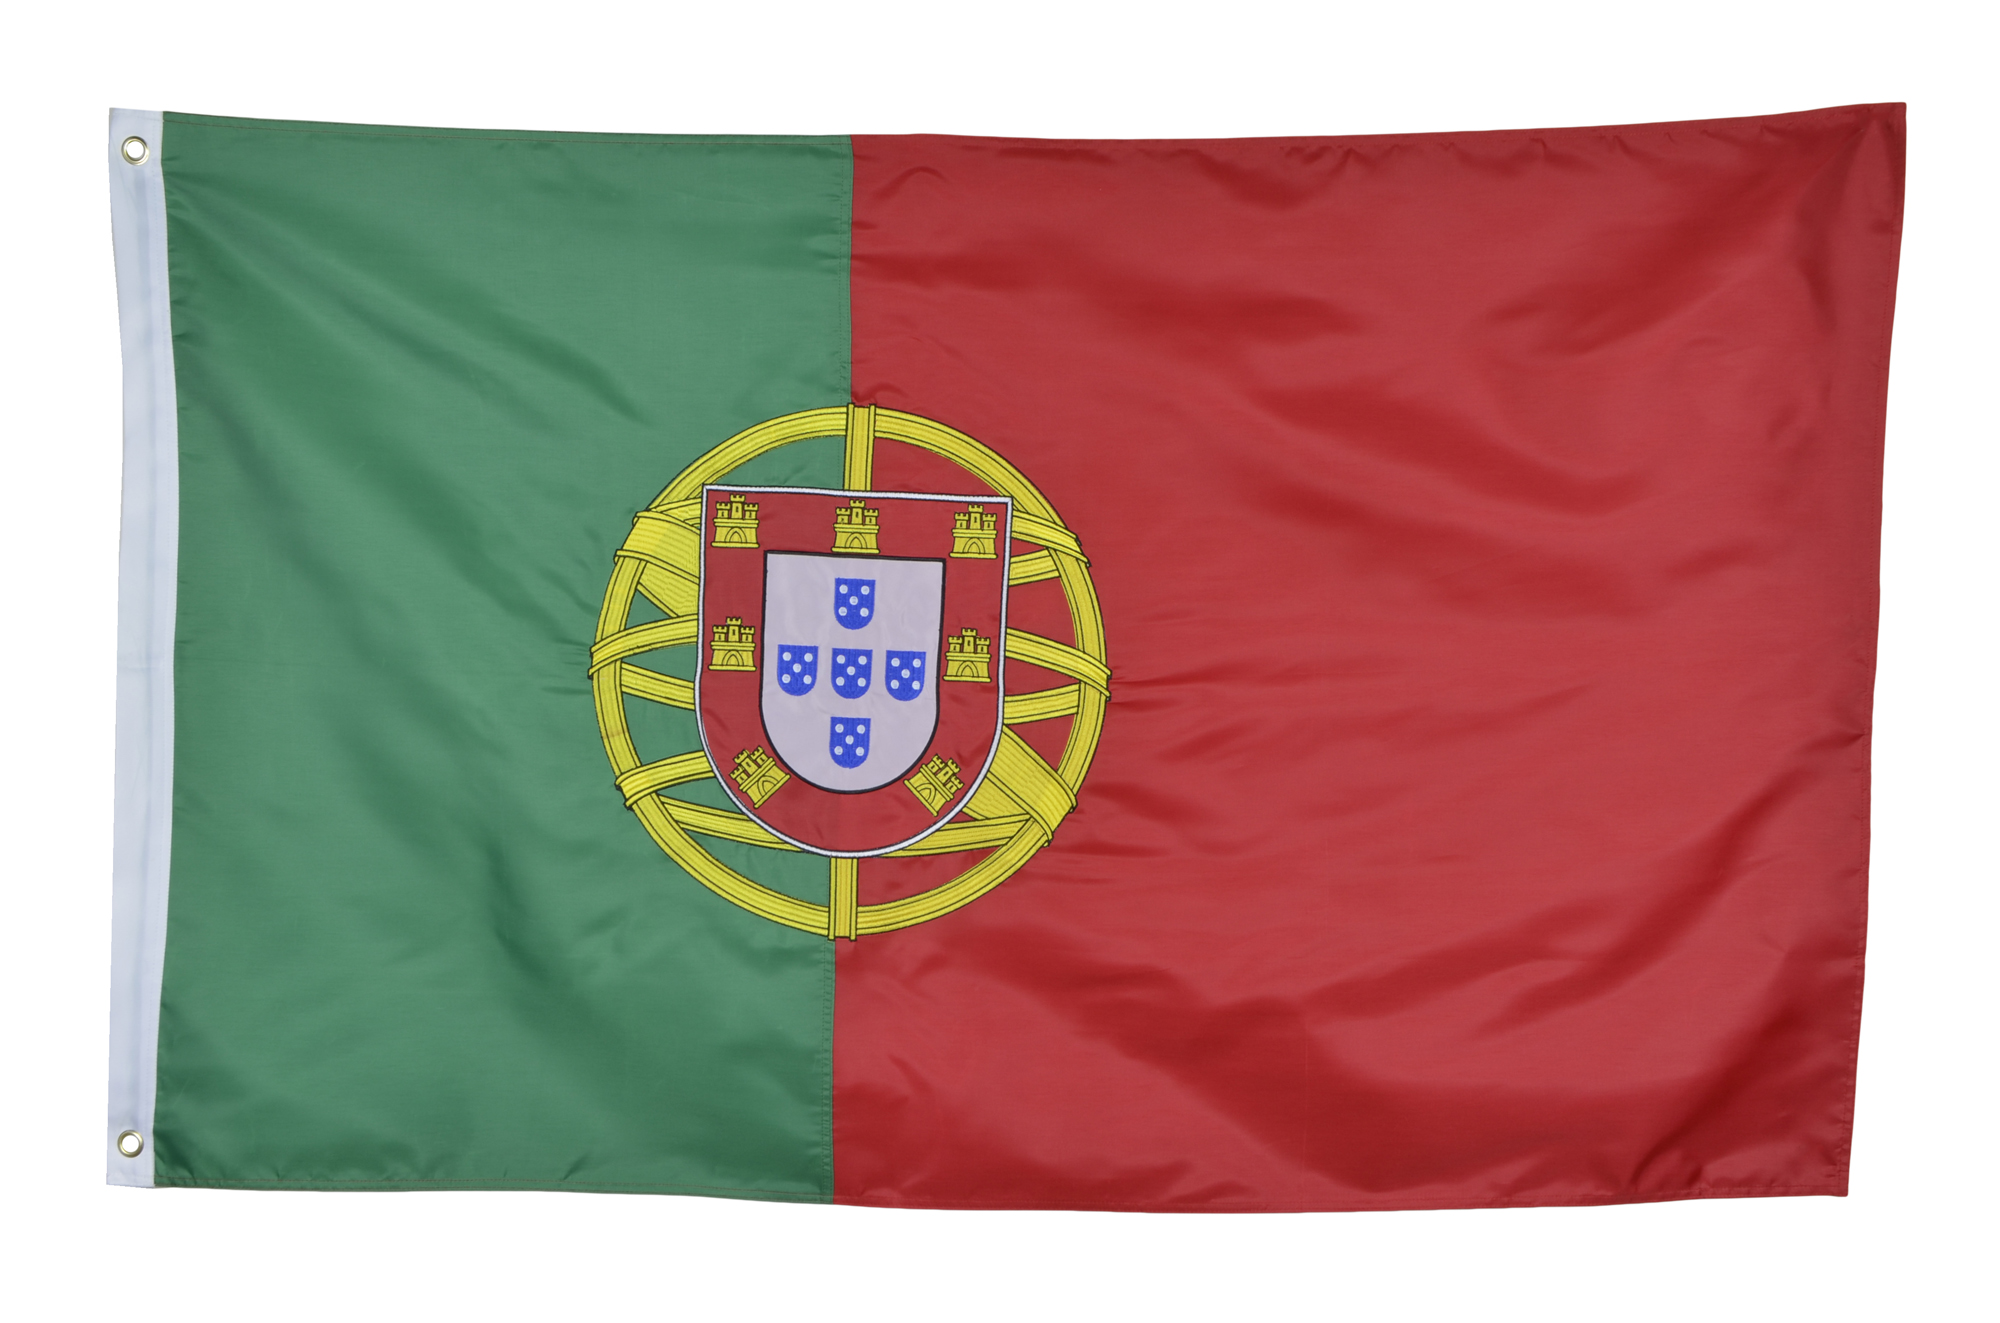 Shop72 - Portugal Flag Embroidered Sewn Stripes Sturdy 201D Oxford Nylon Country Flags - World Flag - Canvas Header Brass Grommets Double Stitched Fro